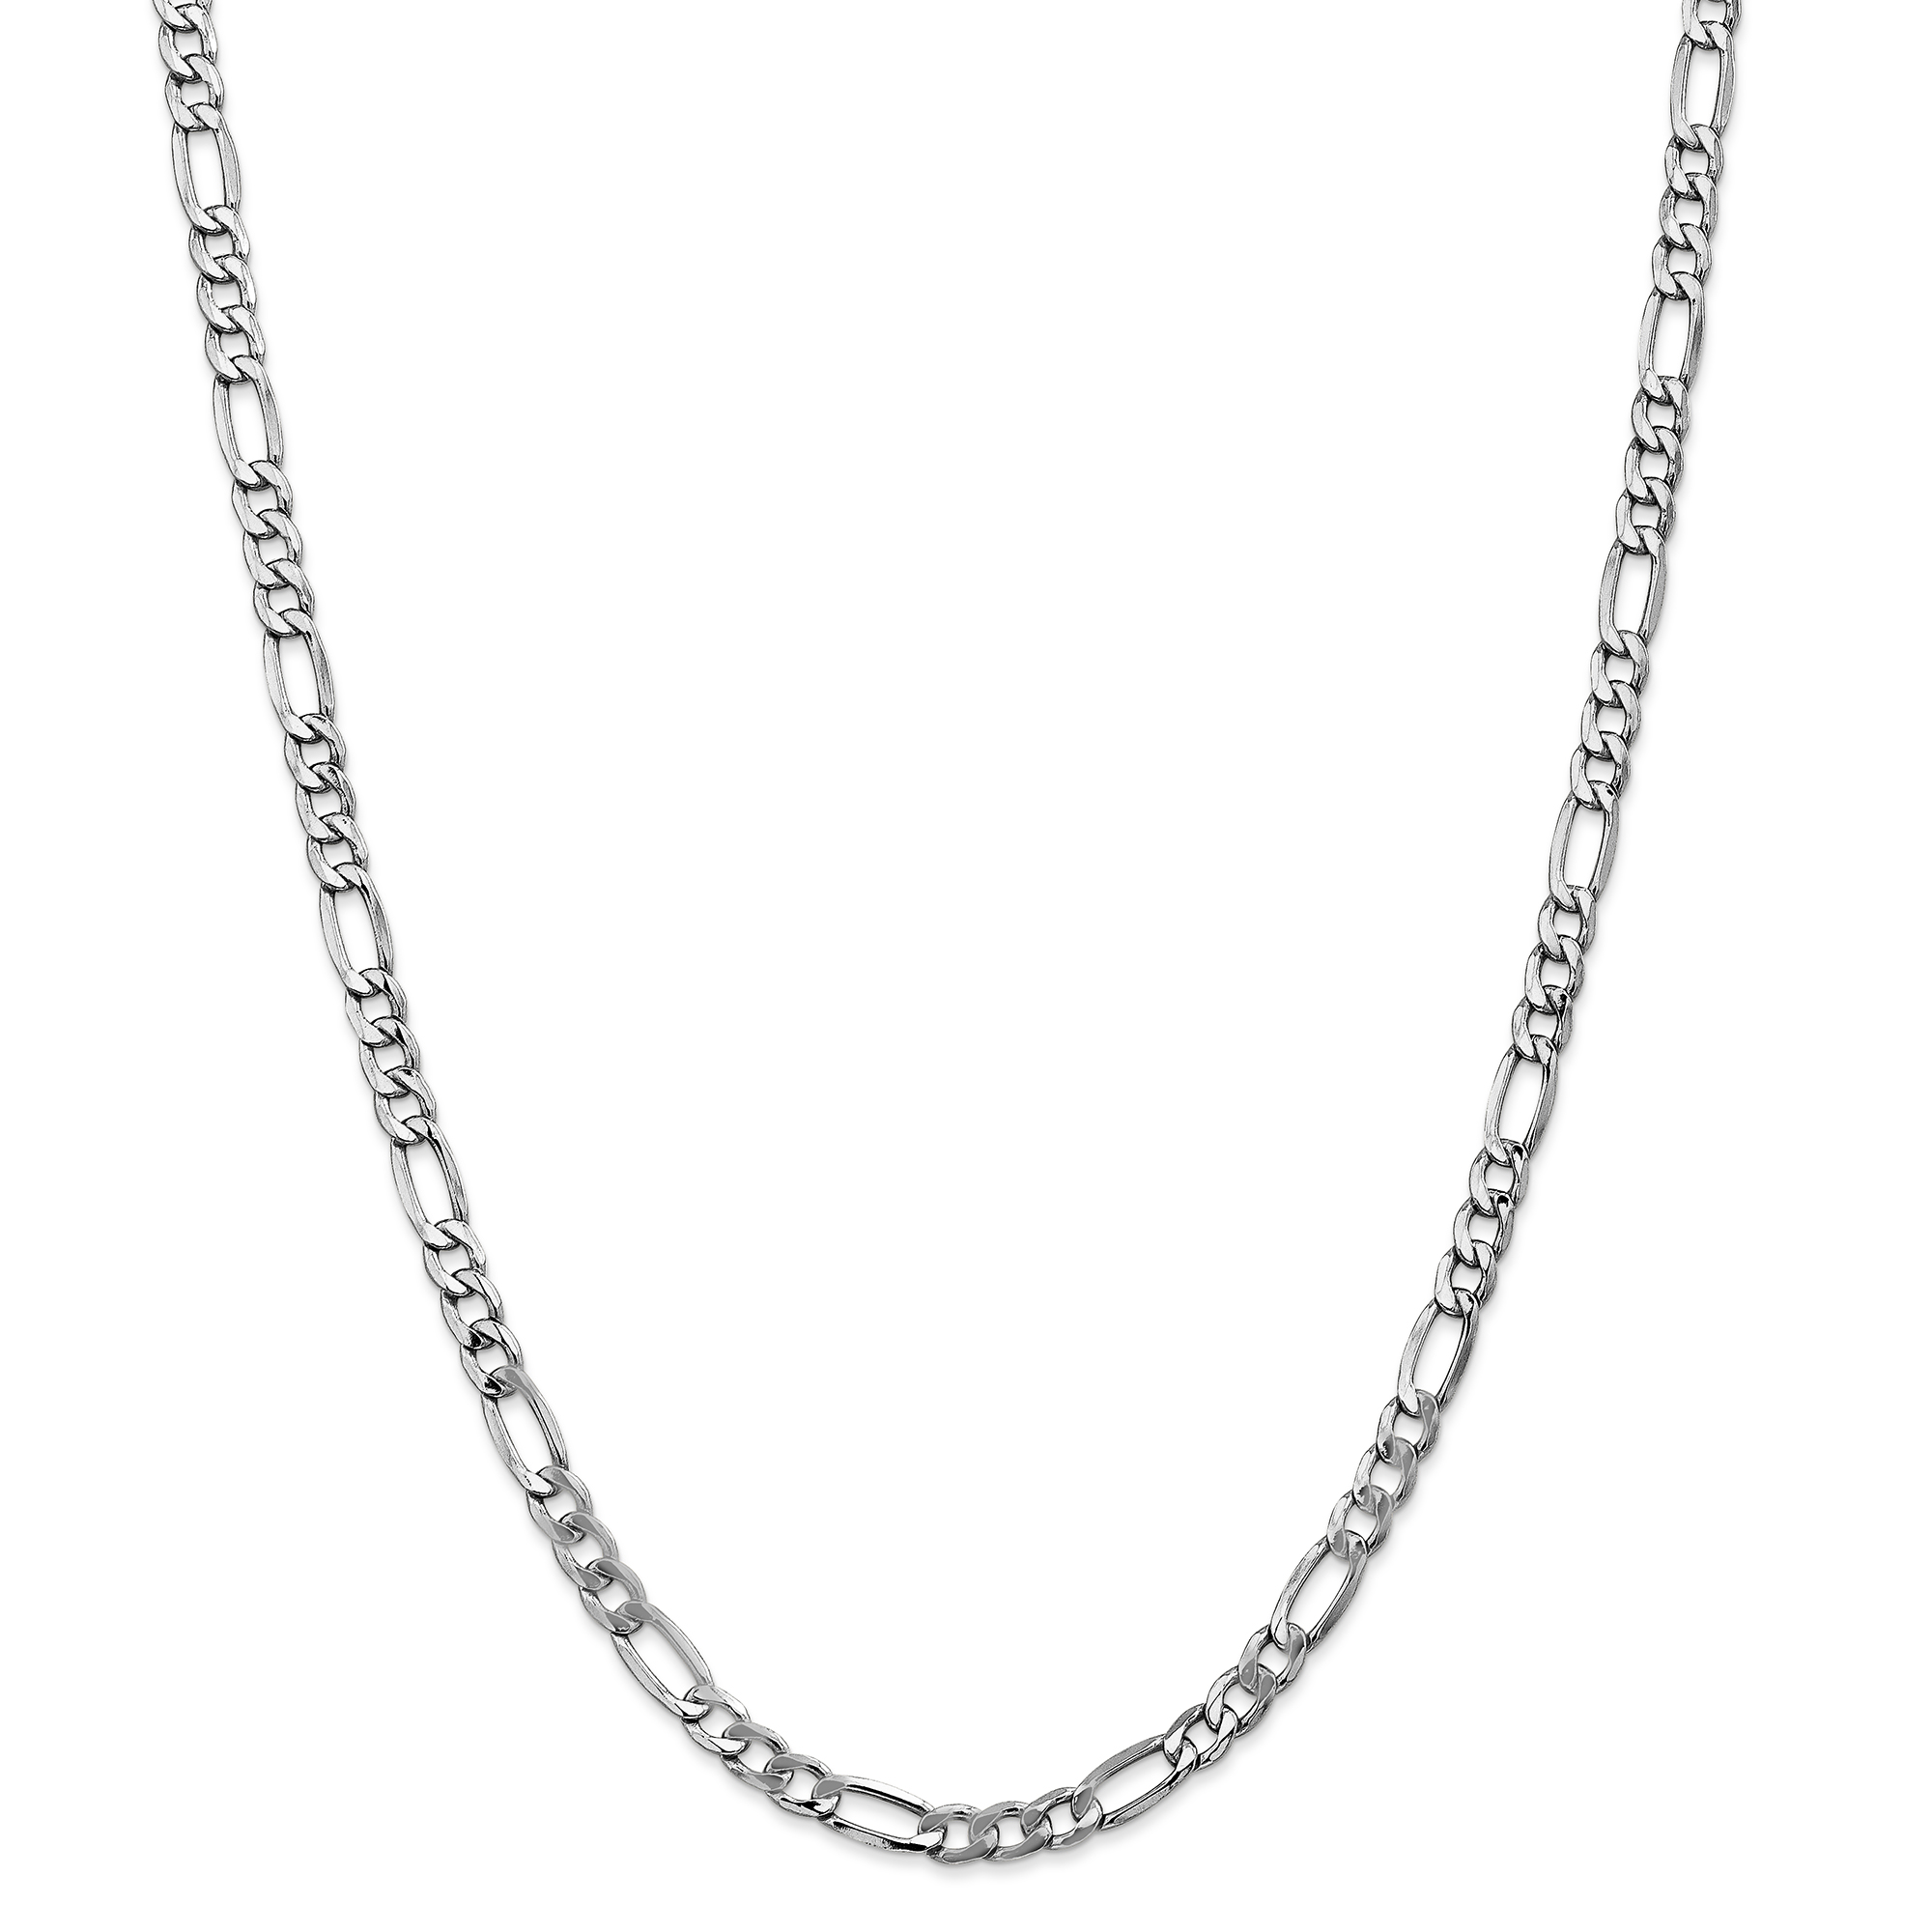 14k White Gold 5.75mm Link Figaro Chain Necklace 24 Inch Pendant Charm Fine Jewelry Gifts For Women For Her - image 5 of 5